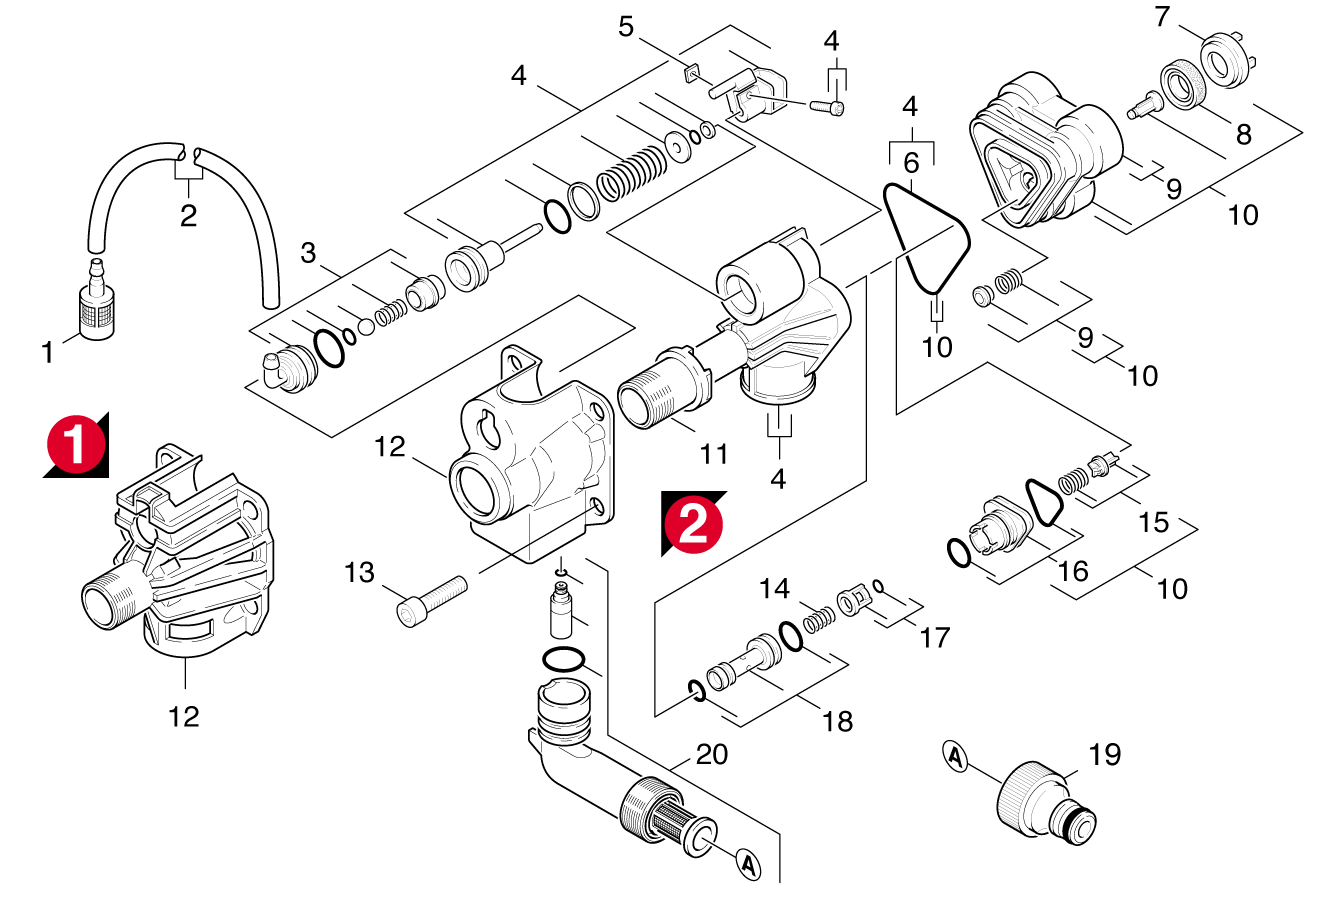 Karcher K4 Spare Parts Diagram